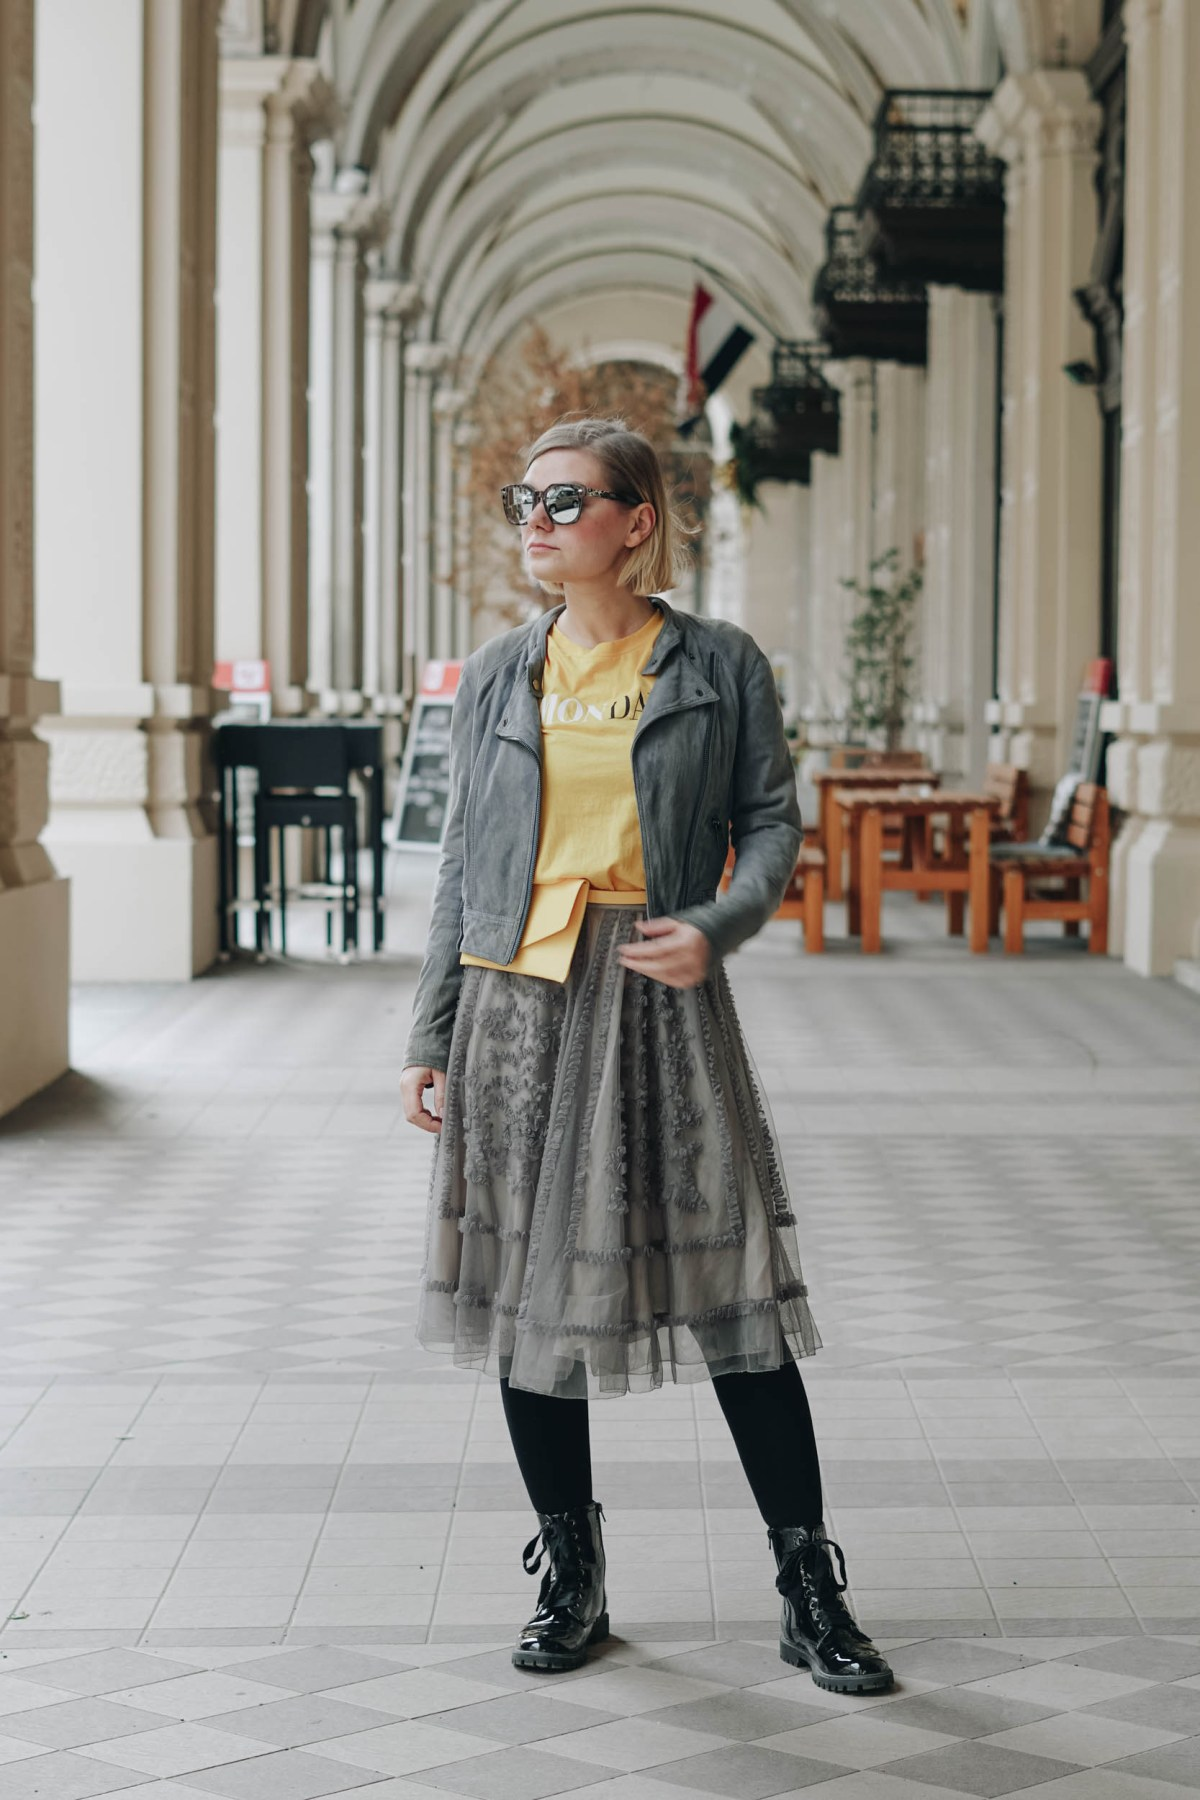 https://i2.wp.com/yellowgirl.at/wp-content/uploads/2019/02/yellowgirl_MontagsOutfit-in-Montag-Shirt-und-Bauchtasche-von-Only-Rüschen-Rock-und-Lackboots-1-von-13.jpg?fit=1200%2C1800&ssl=1